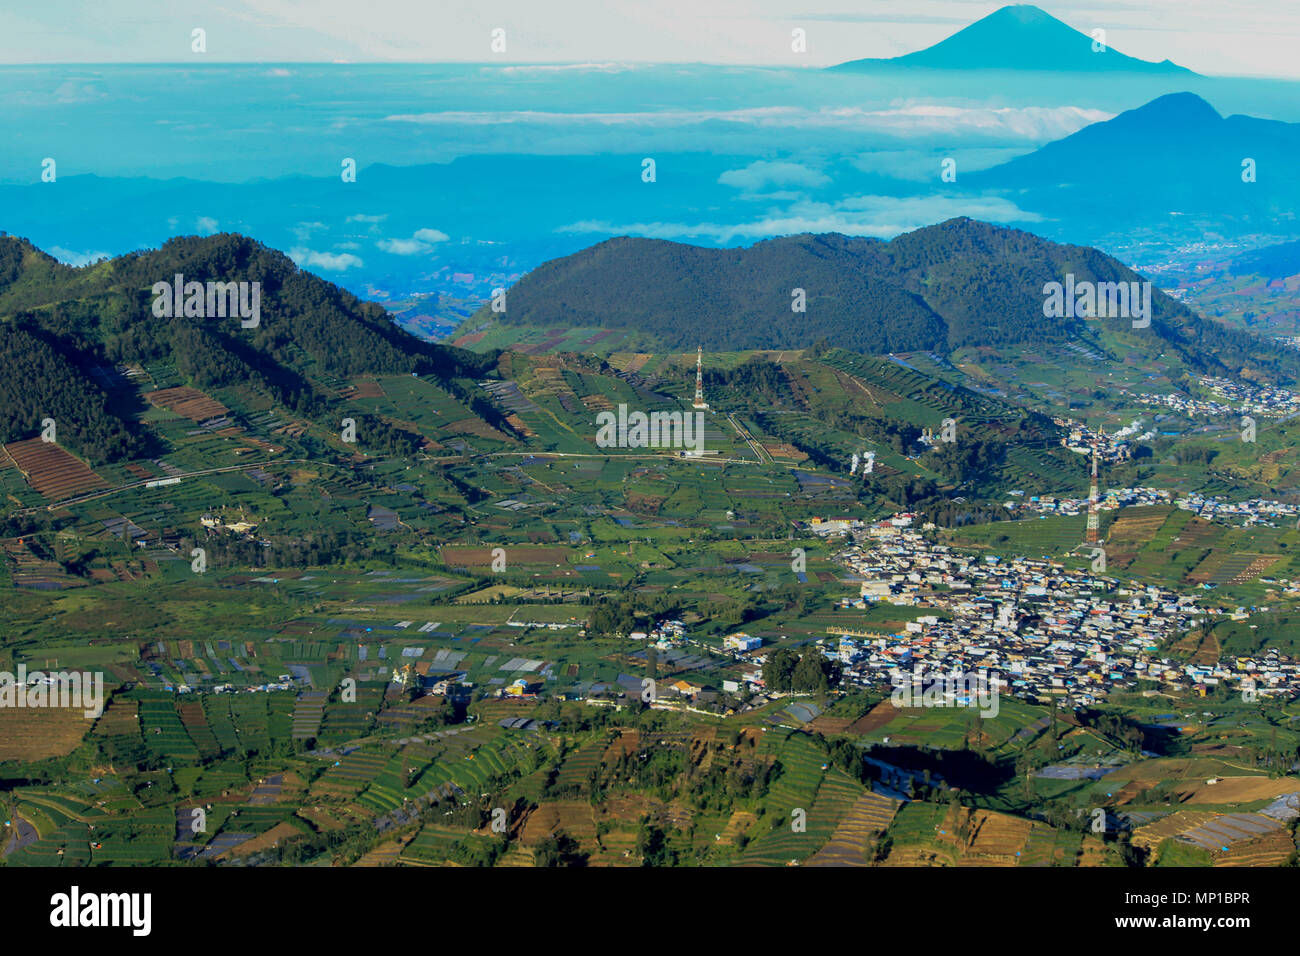 The Dieng Plateau And Mount Prau Is One Of Most Beautiful Tour Plateu Destination In Central Java Indonesia